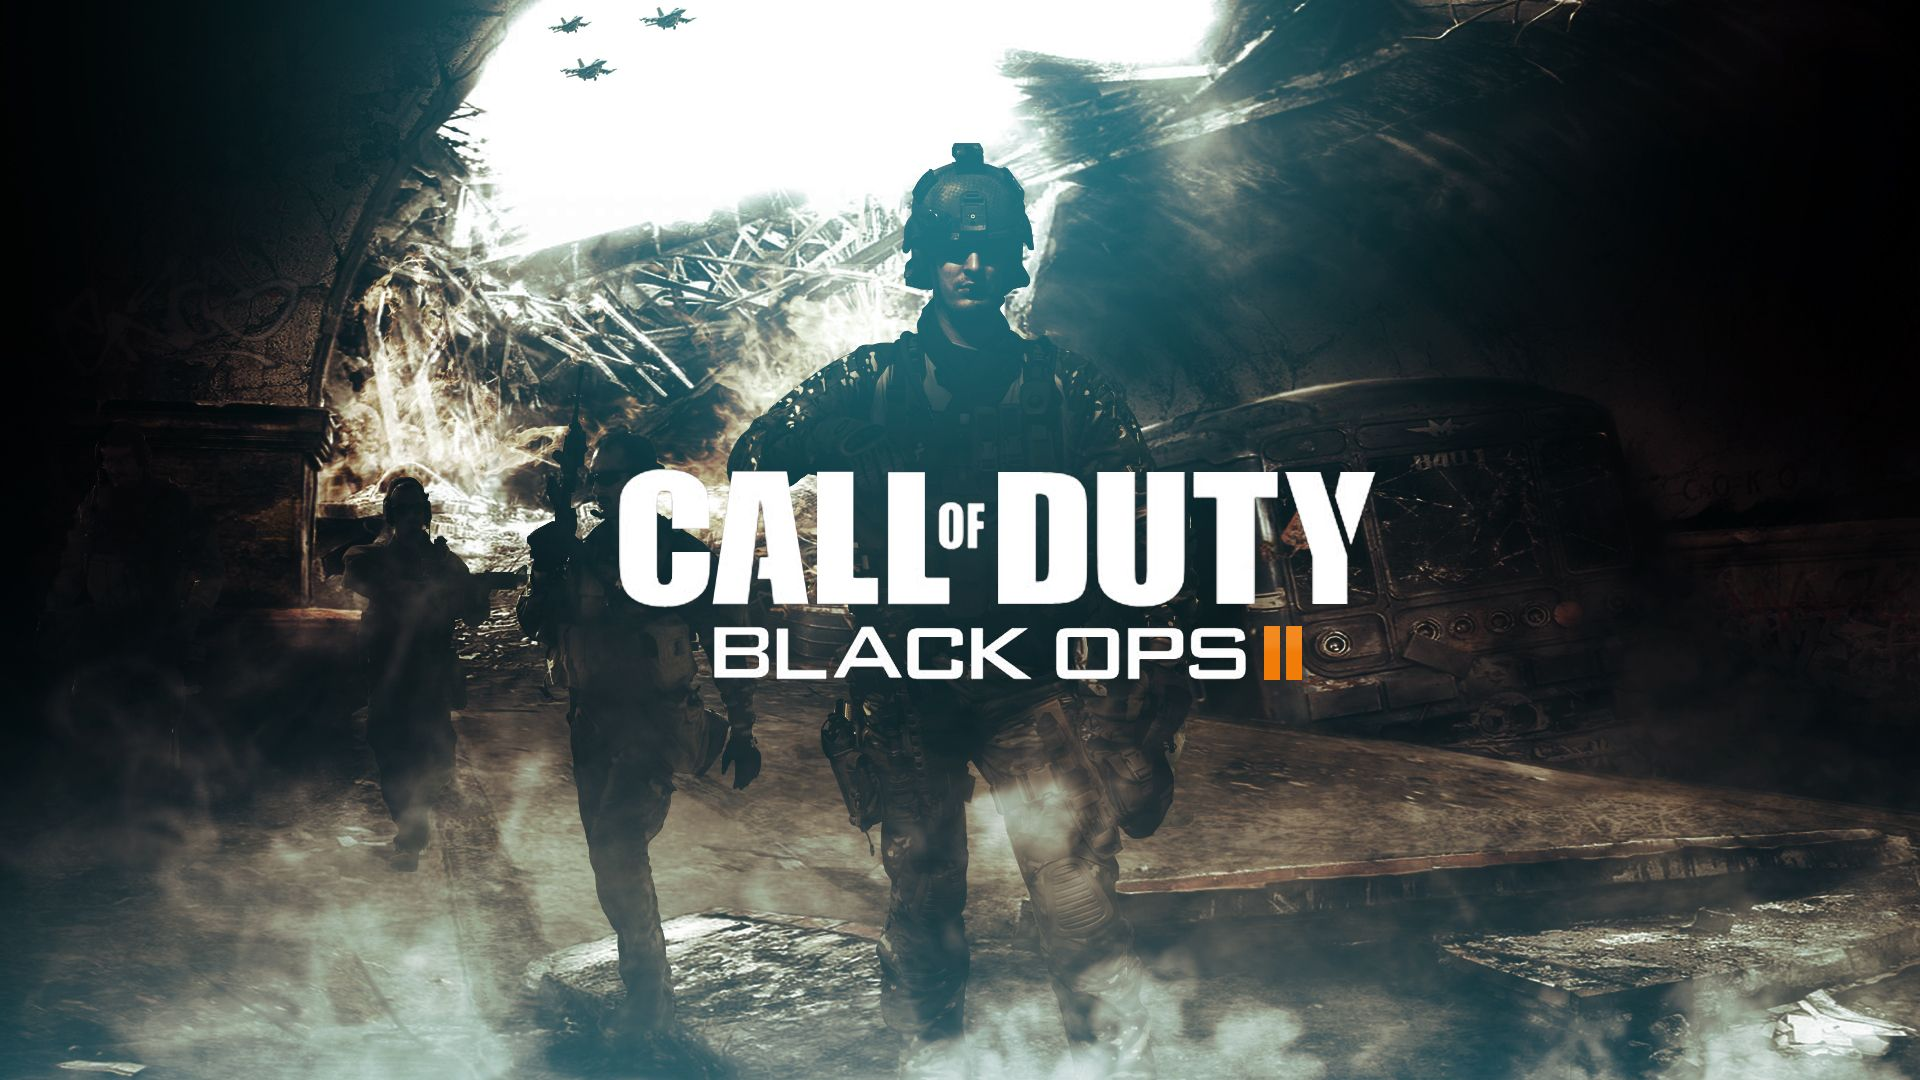 black ops 2 7 call of duty black ops 2 1920x1080